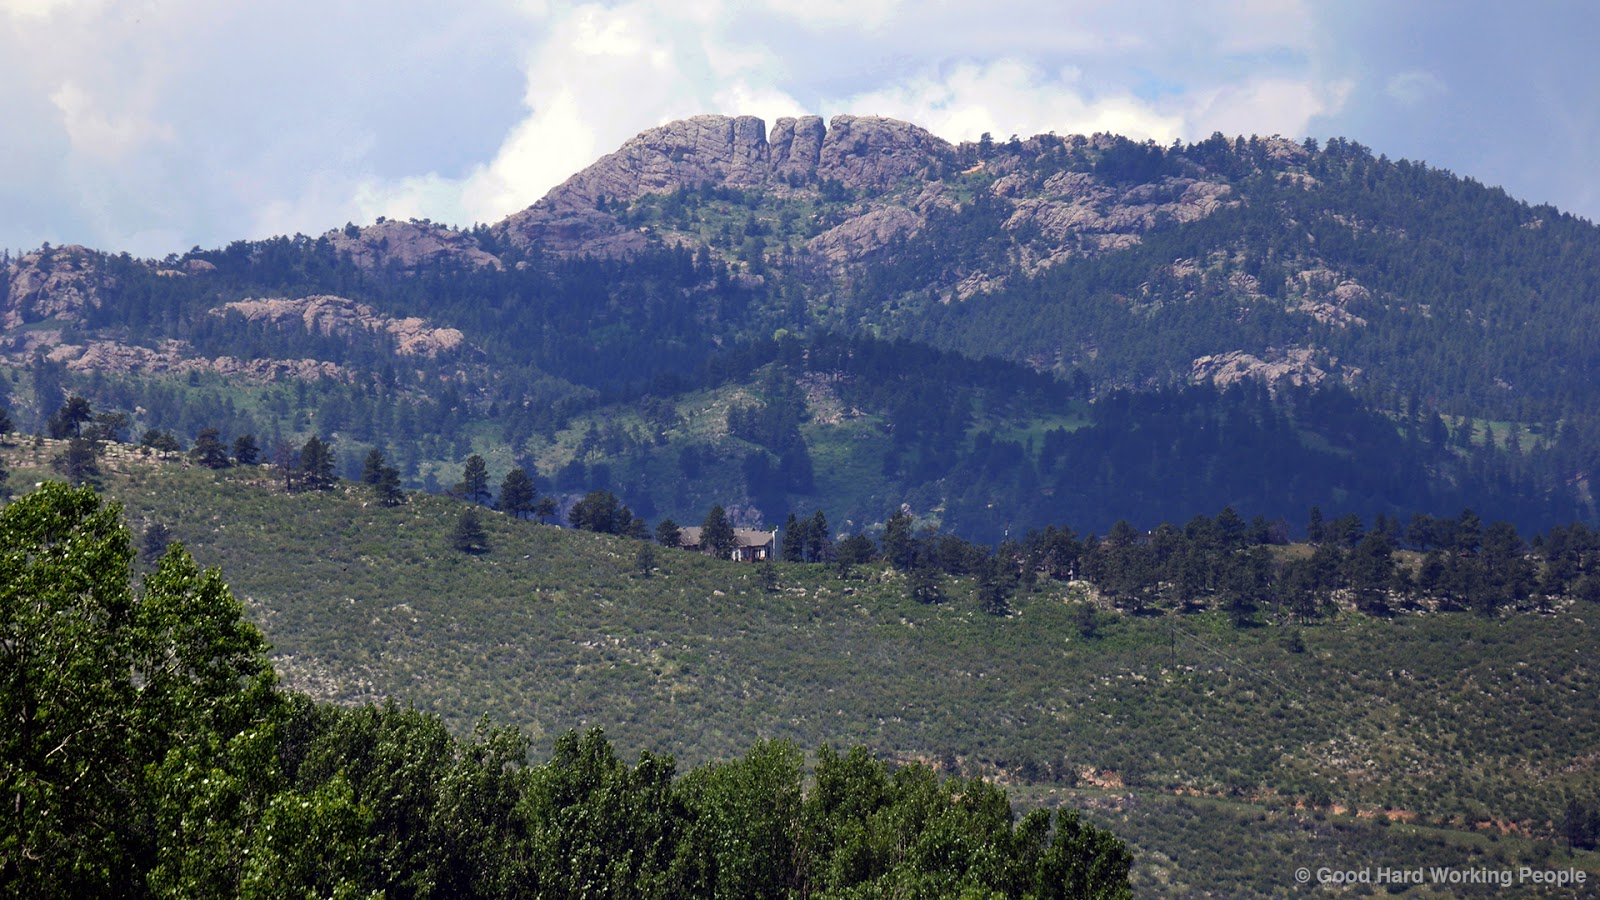 fort collins co dating Home to both a thriving tourism industry and a major state university, the city of  fort collins, colorado, is awash in local character and interesting things to do.